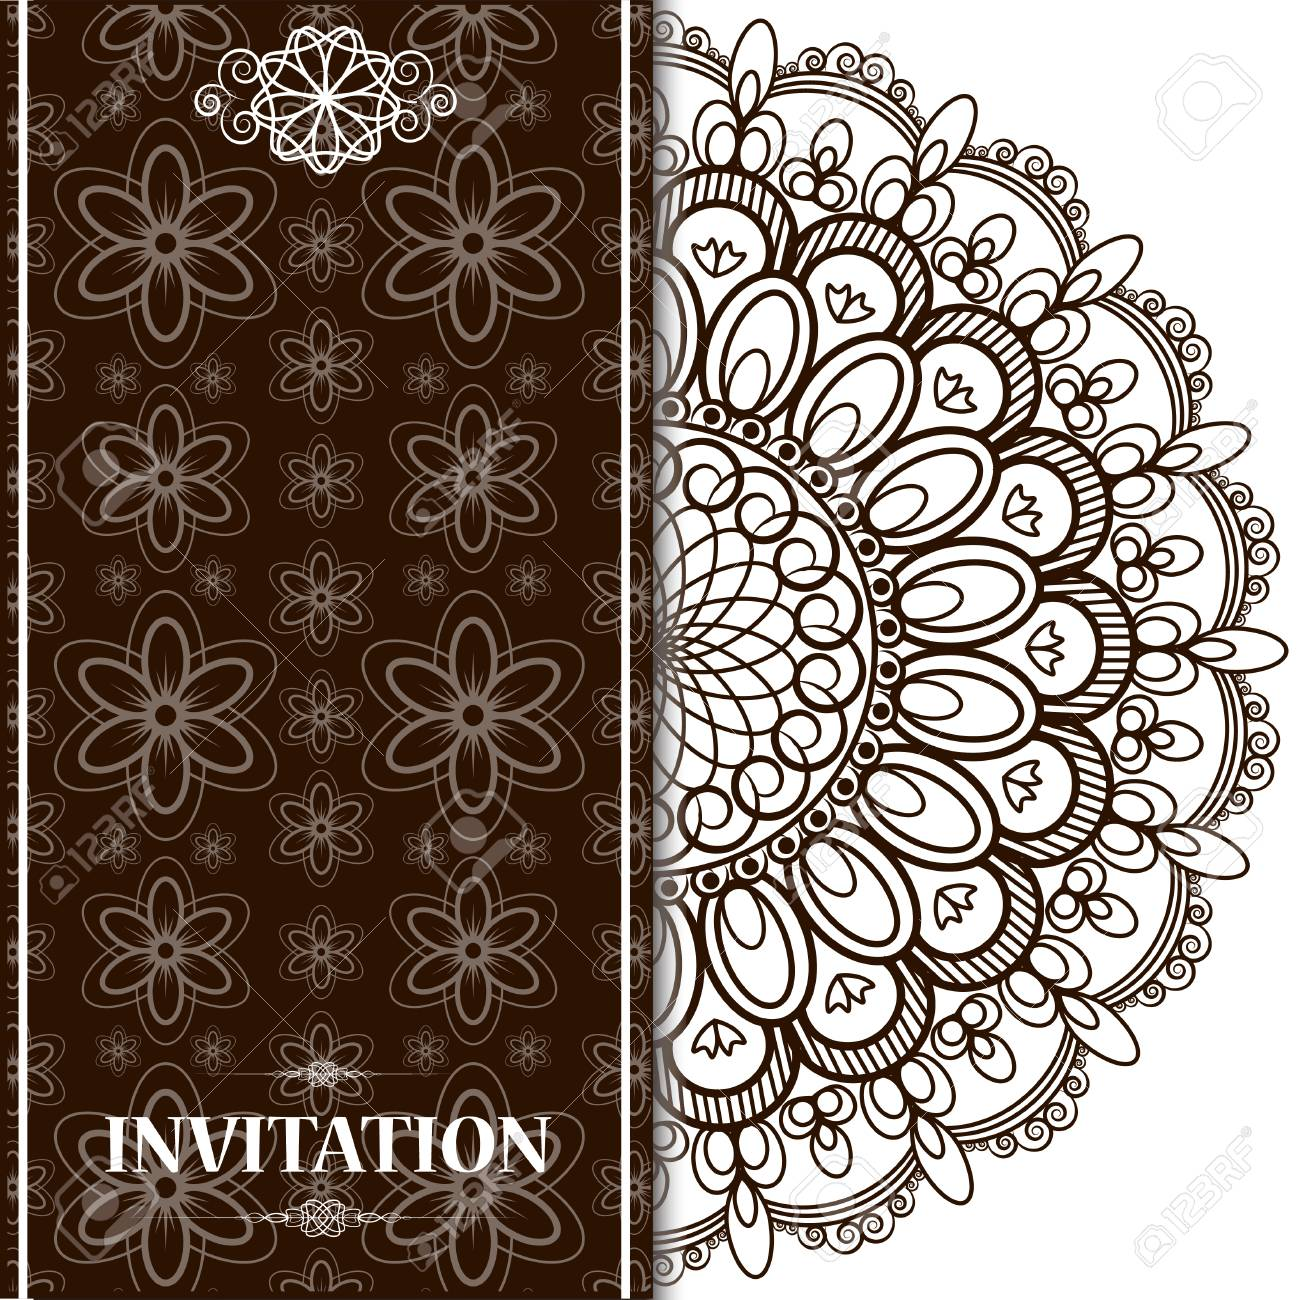 Wedding Invitation Or Card With Abstract Background Islam Arabic Royalty Free Cliparts Vectors And Stock Illustration Image 111709382